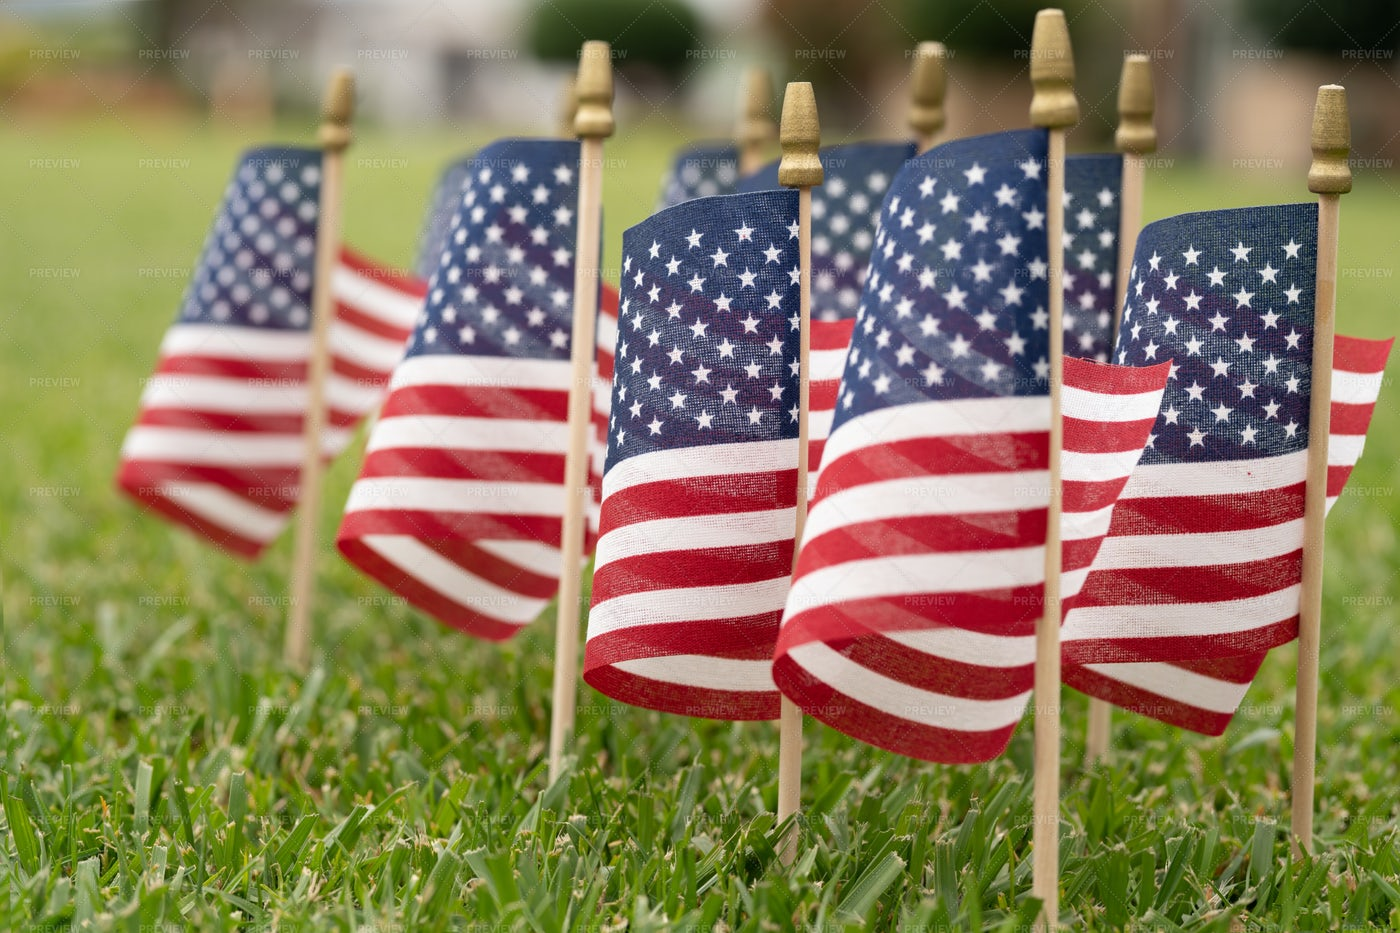 American Flags On Grass: Stock Photos